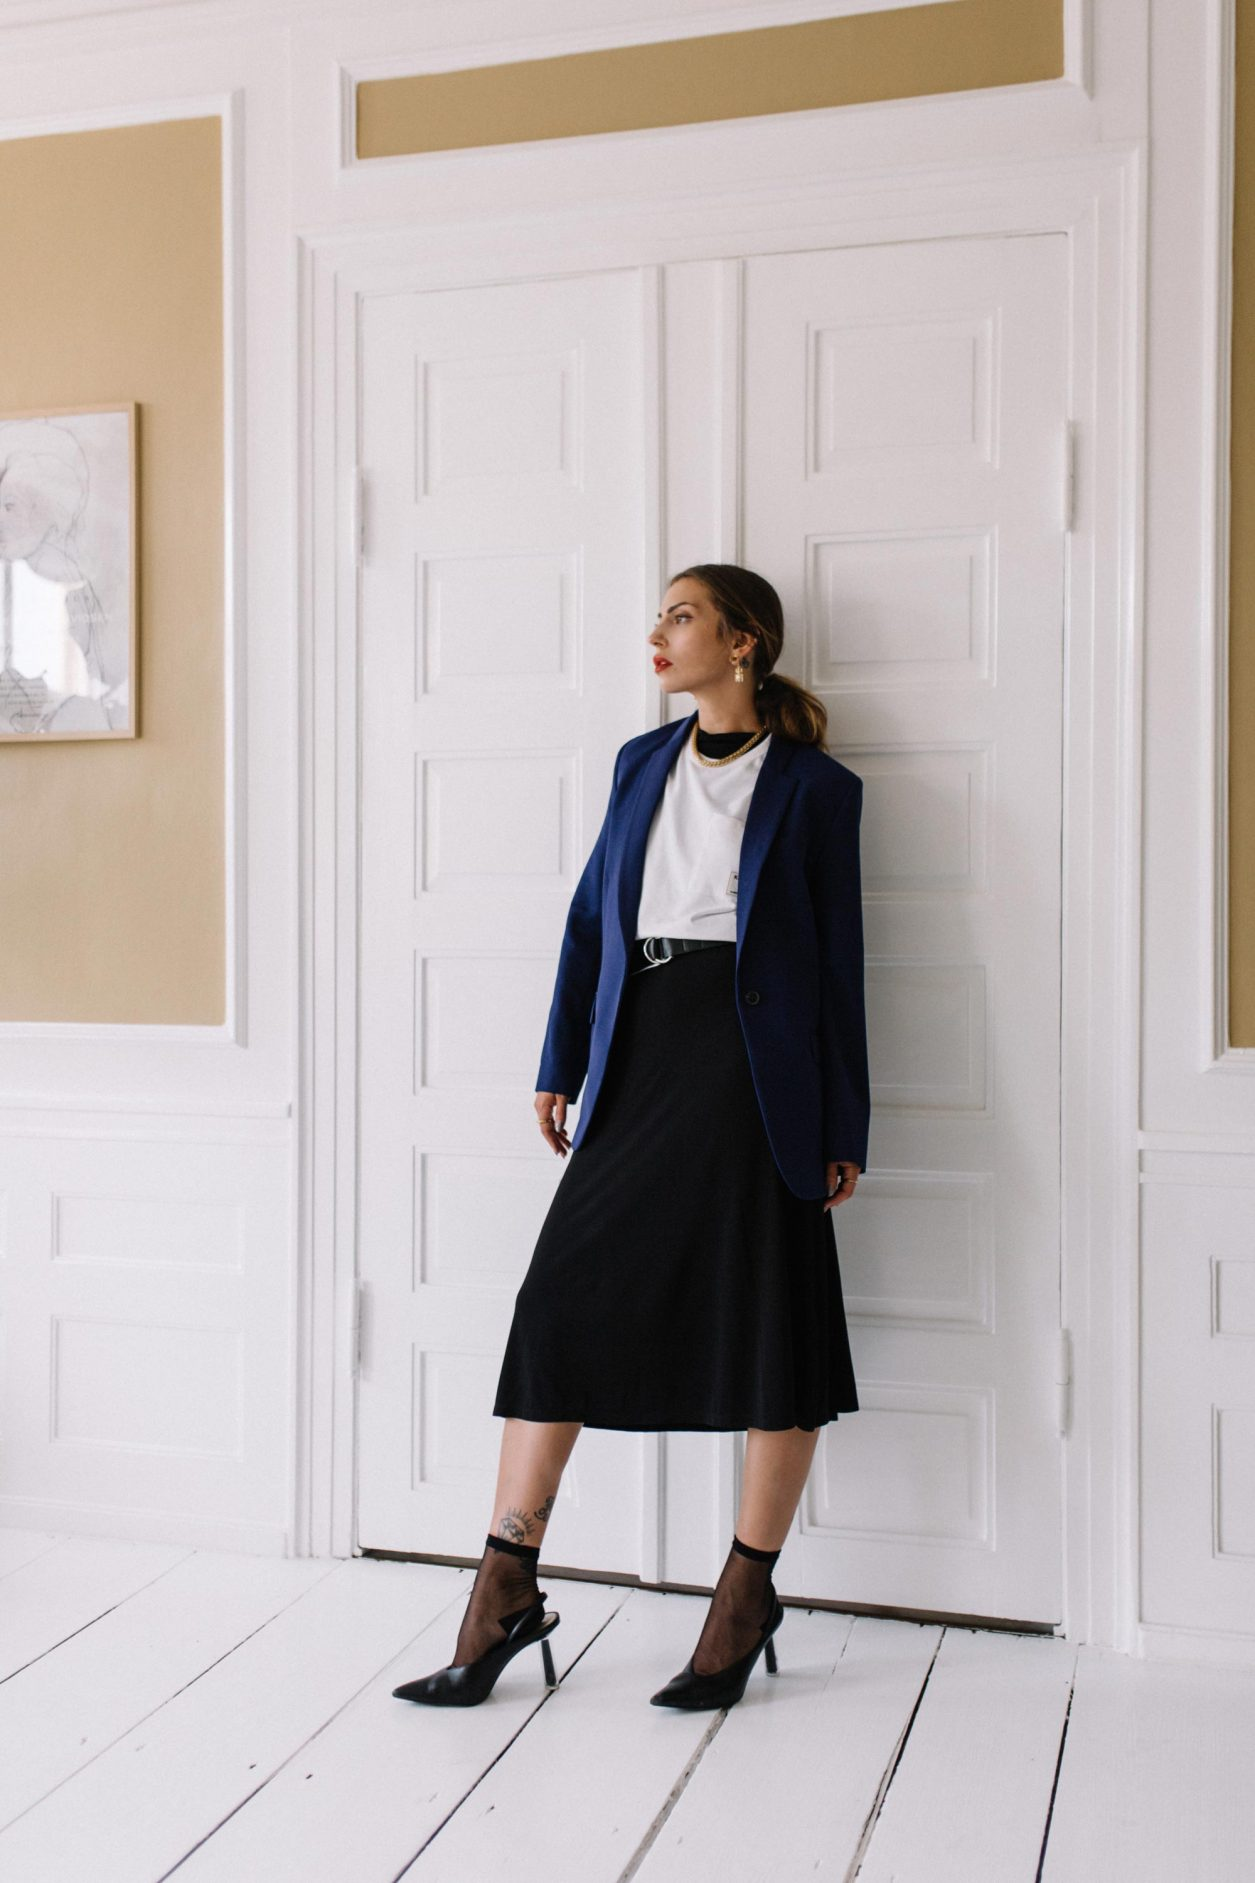 Blazer: Lala Berlin Shirt: Samsoe Samsoe Necklace: Vintage Dress: Samsoe Samsoe Pumps: Charles Keith Socks: Wolford Belt: Closed